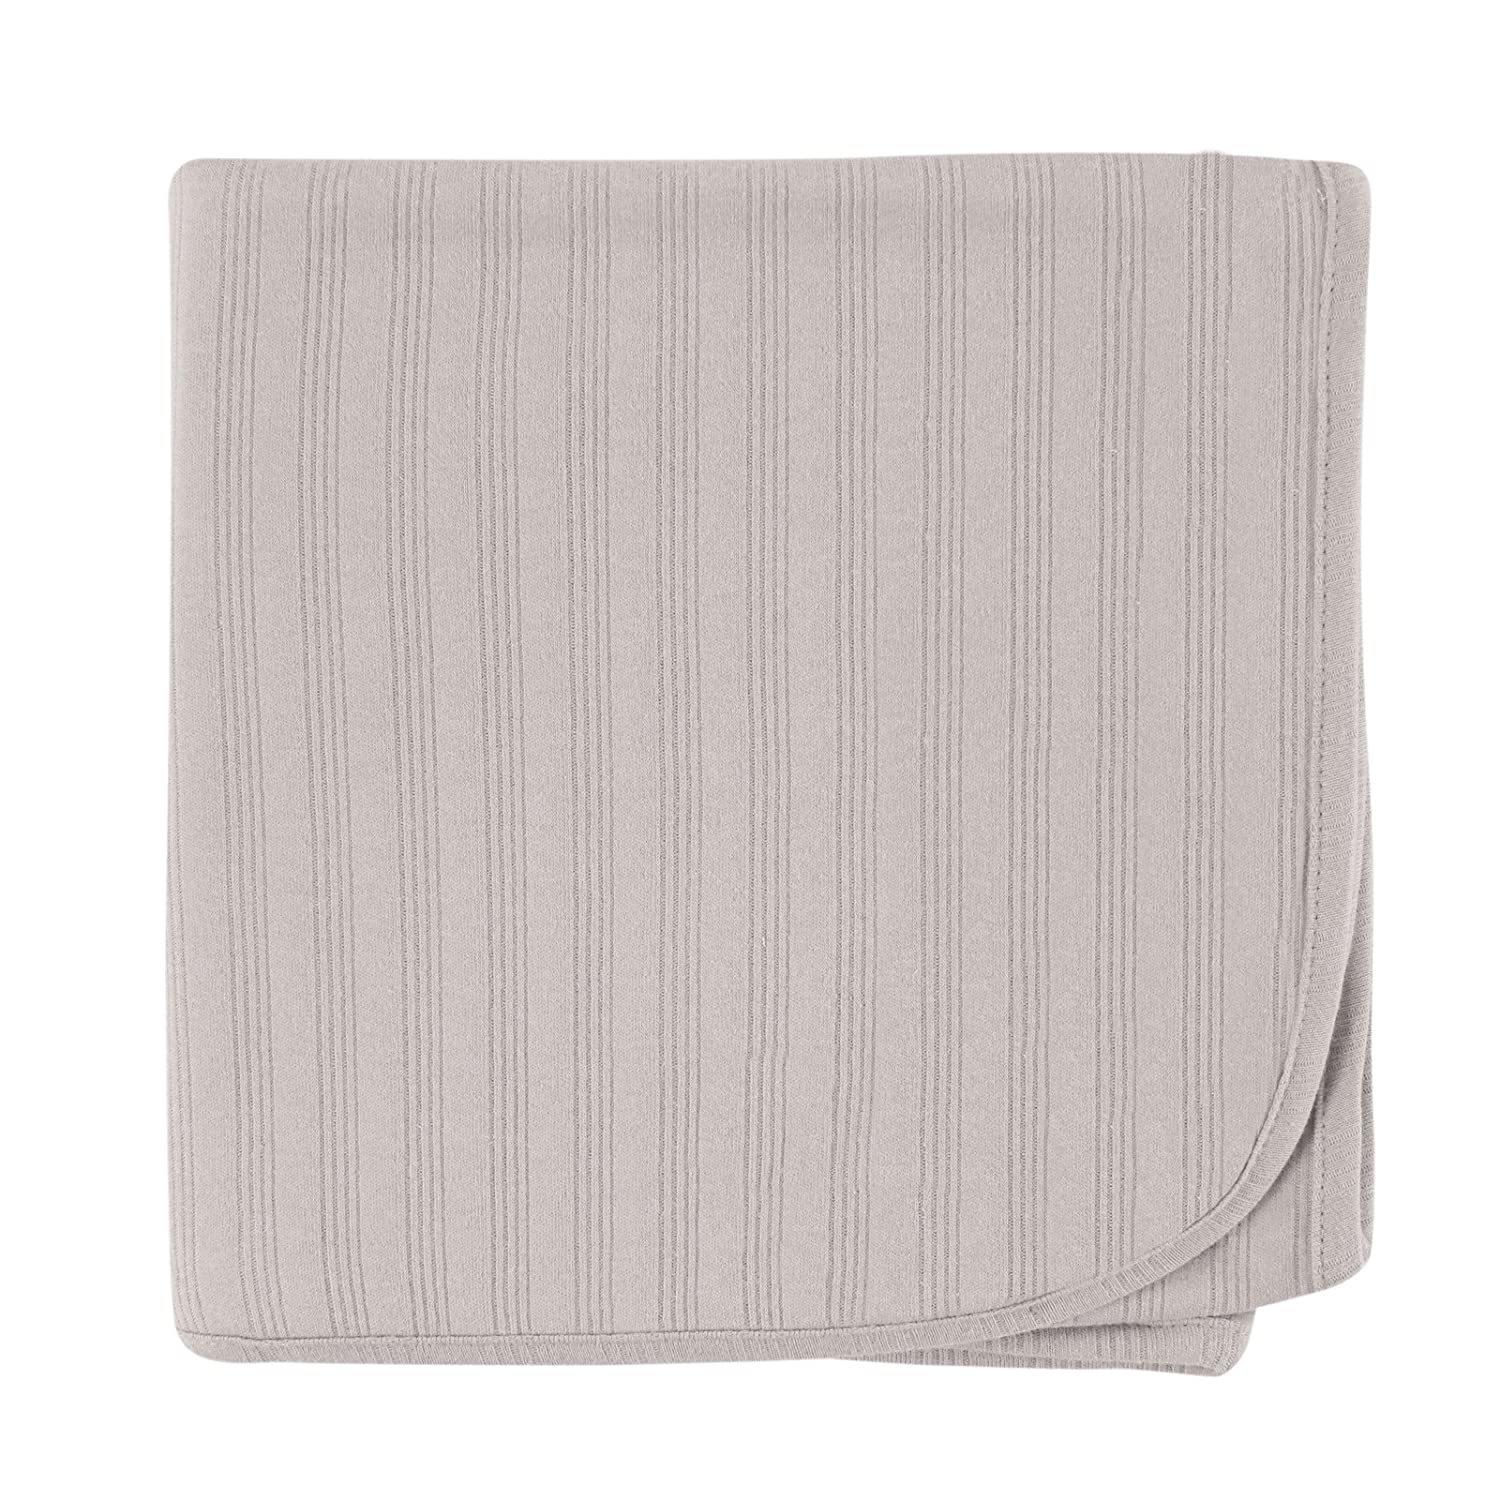 Moroccan Touched by Nature Organic Receiving Blanket